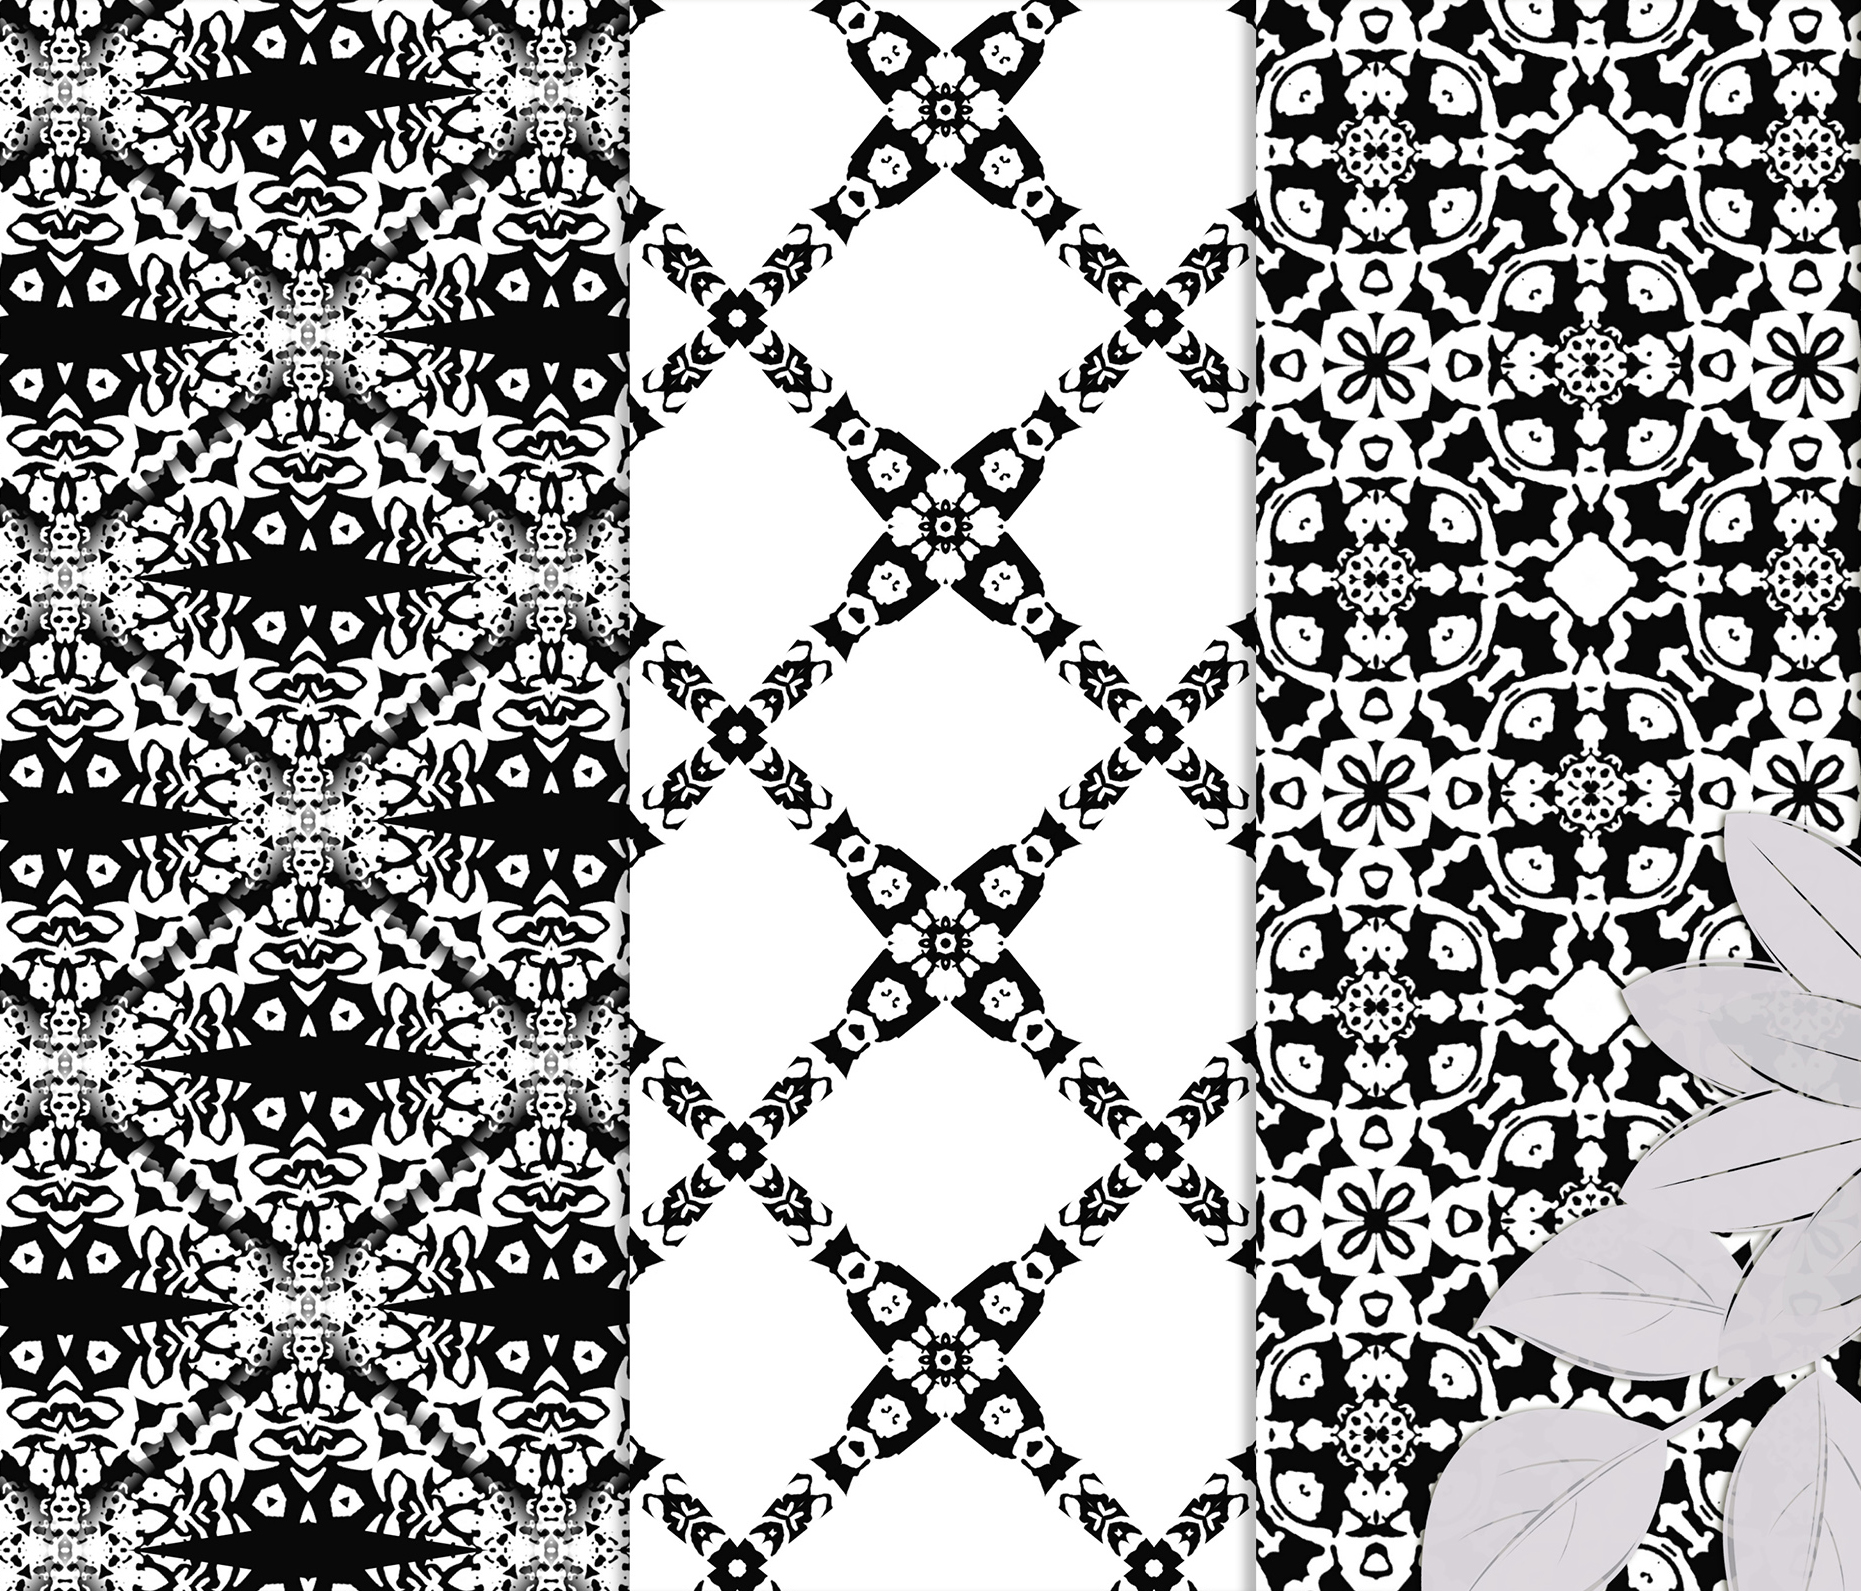 Black and white Digital Scrapbook Paper example image 6